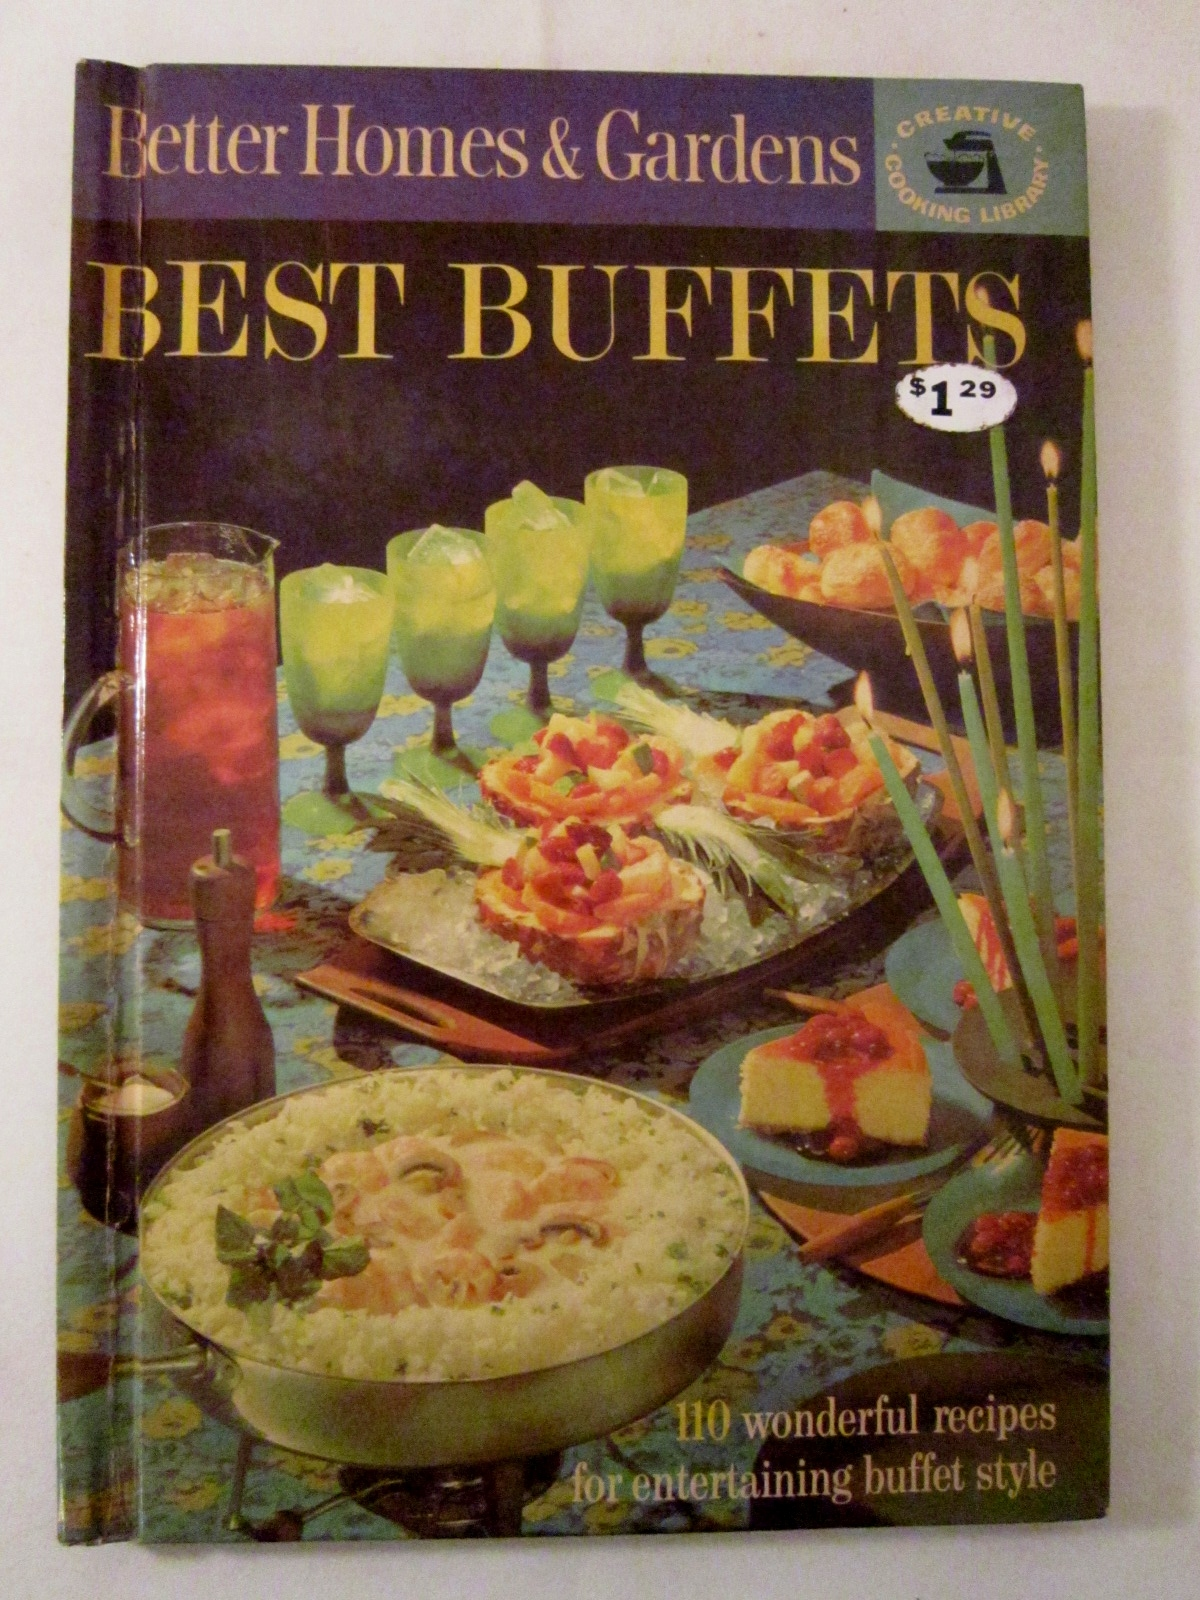 Hardcover Cookbook : Best buffets better homes and gardens hardcover